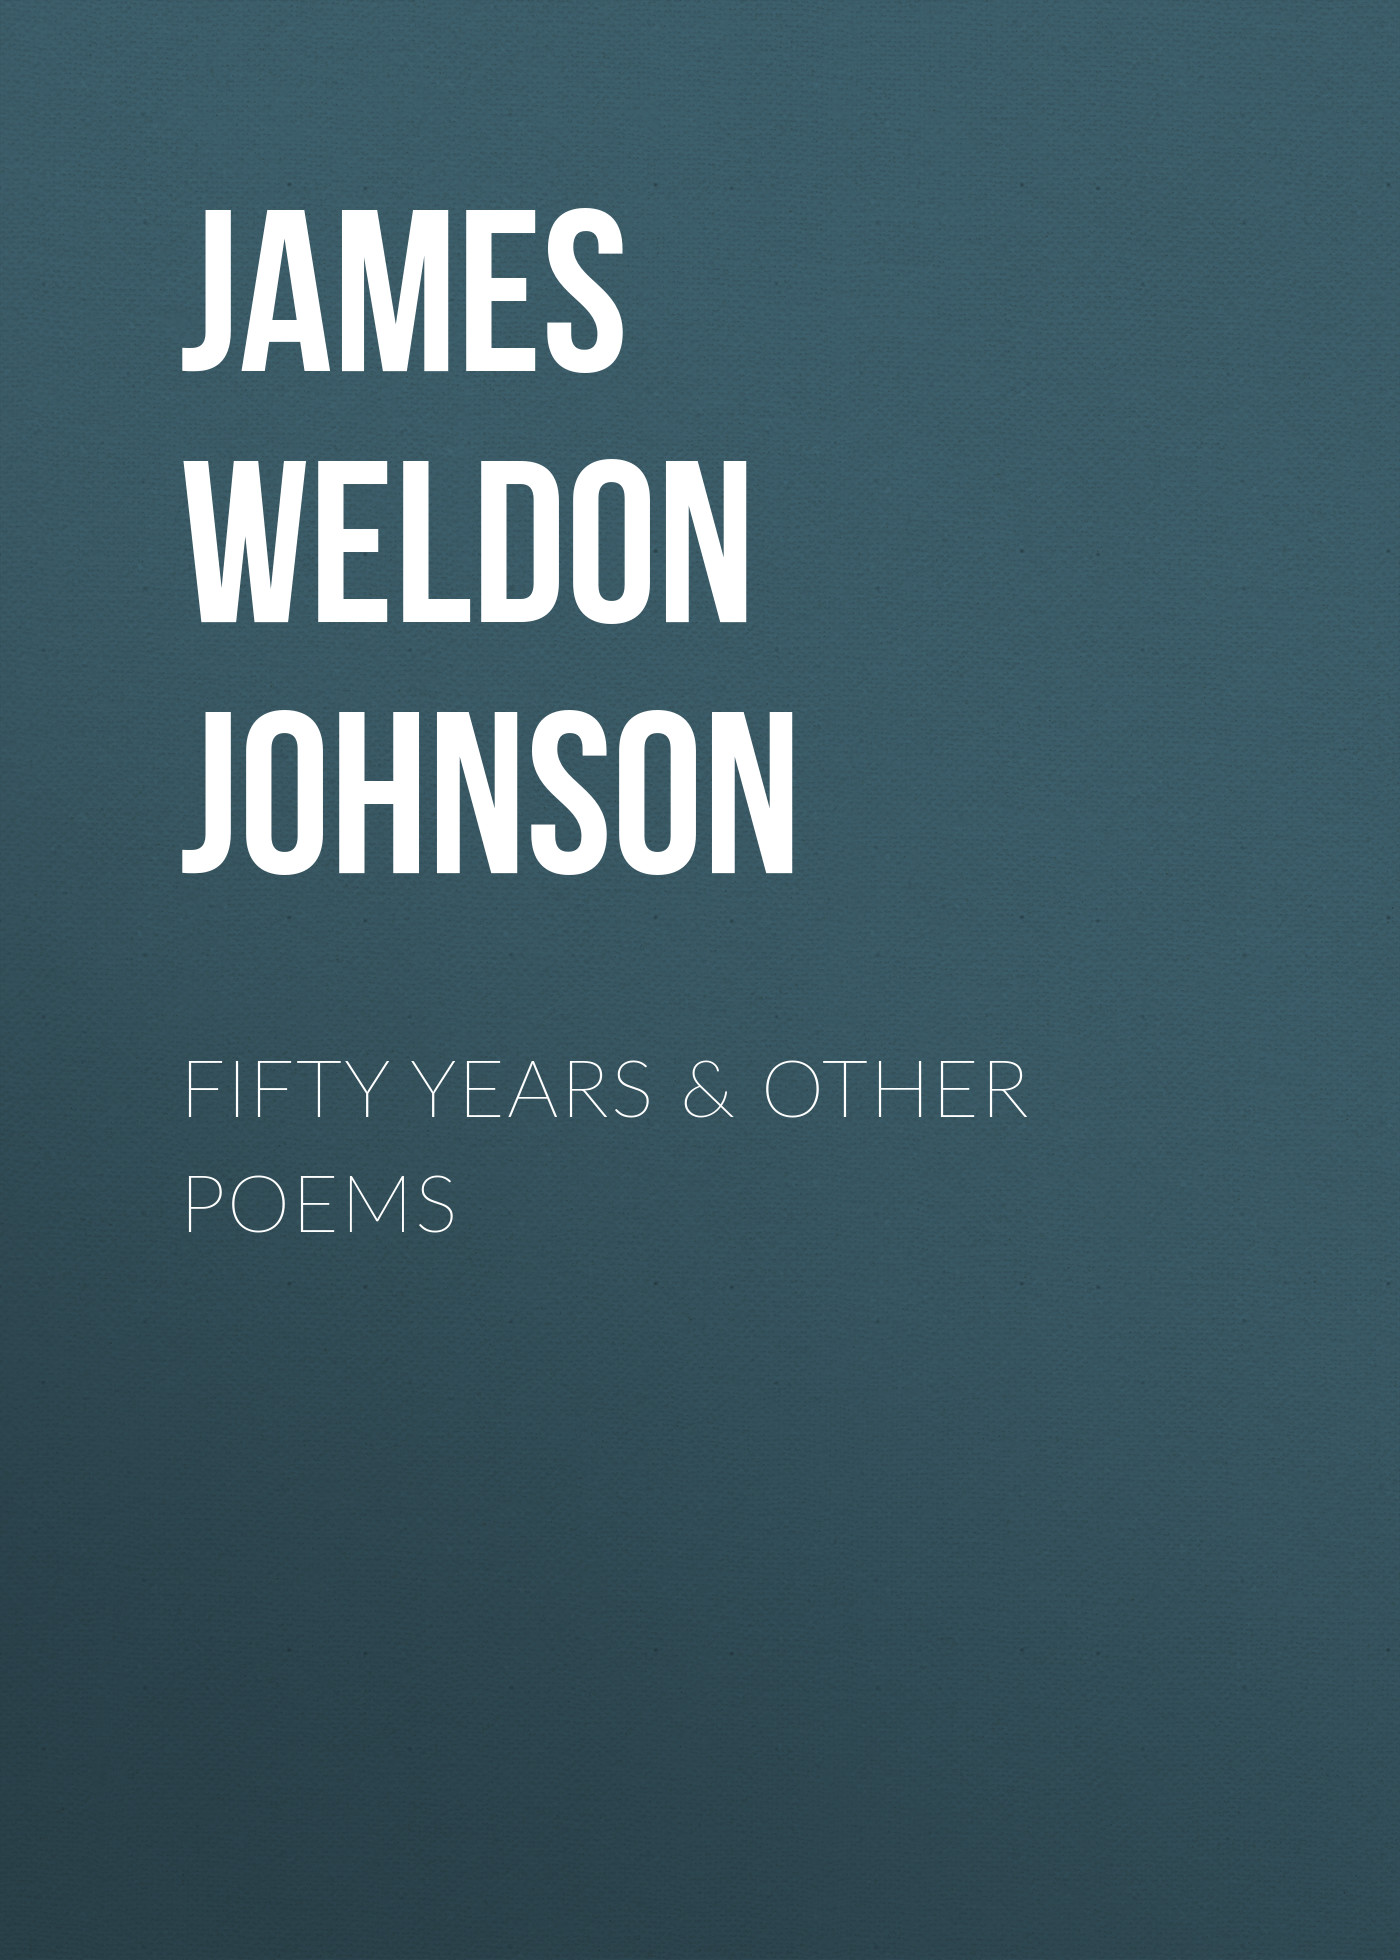 Fifty years&Other Poems